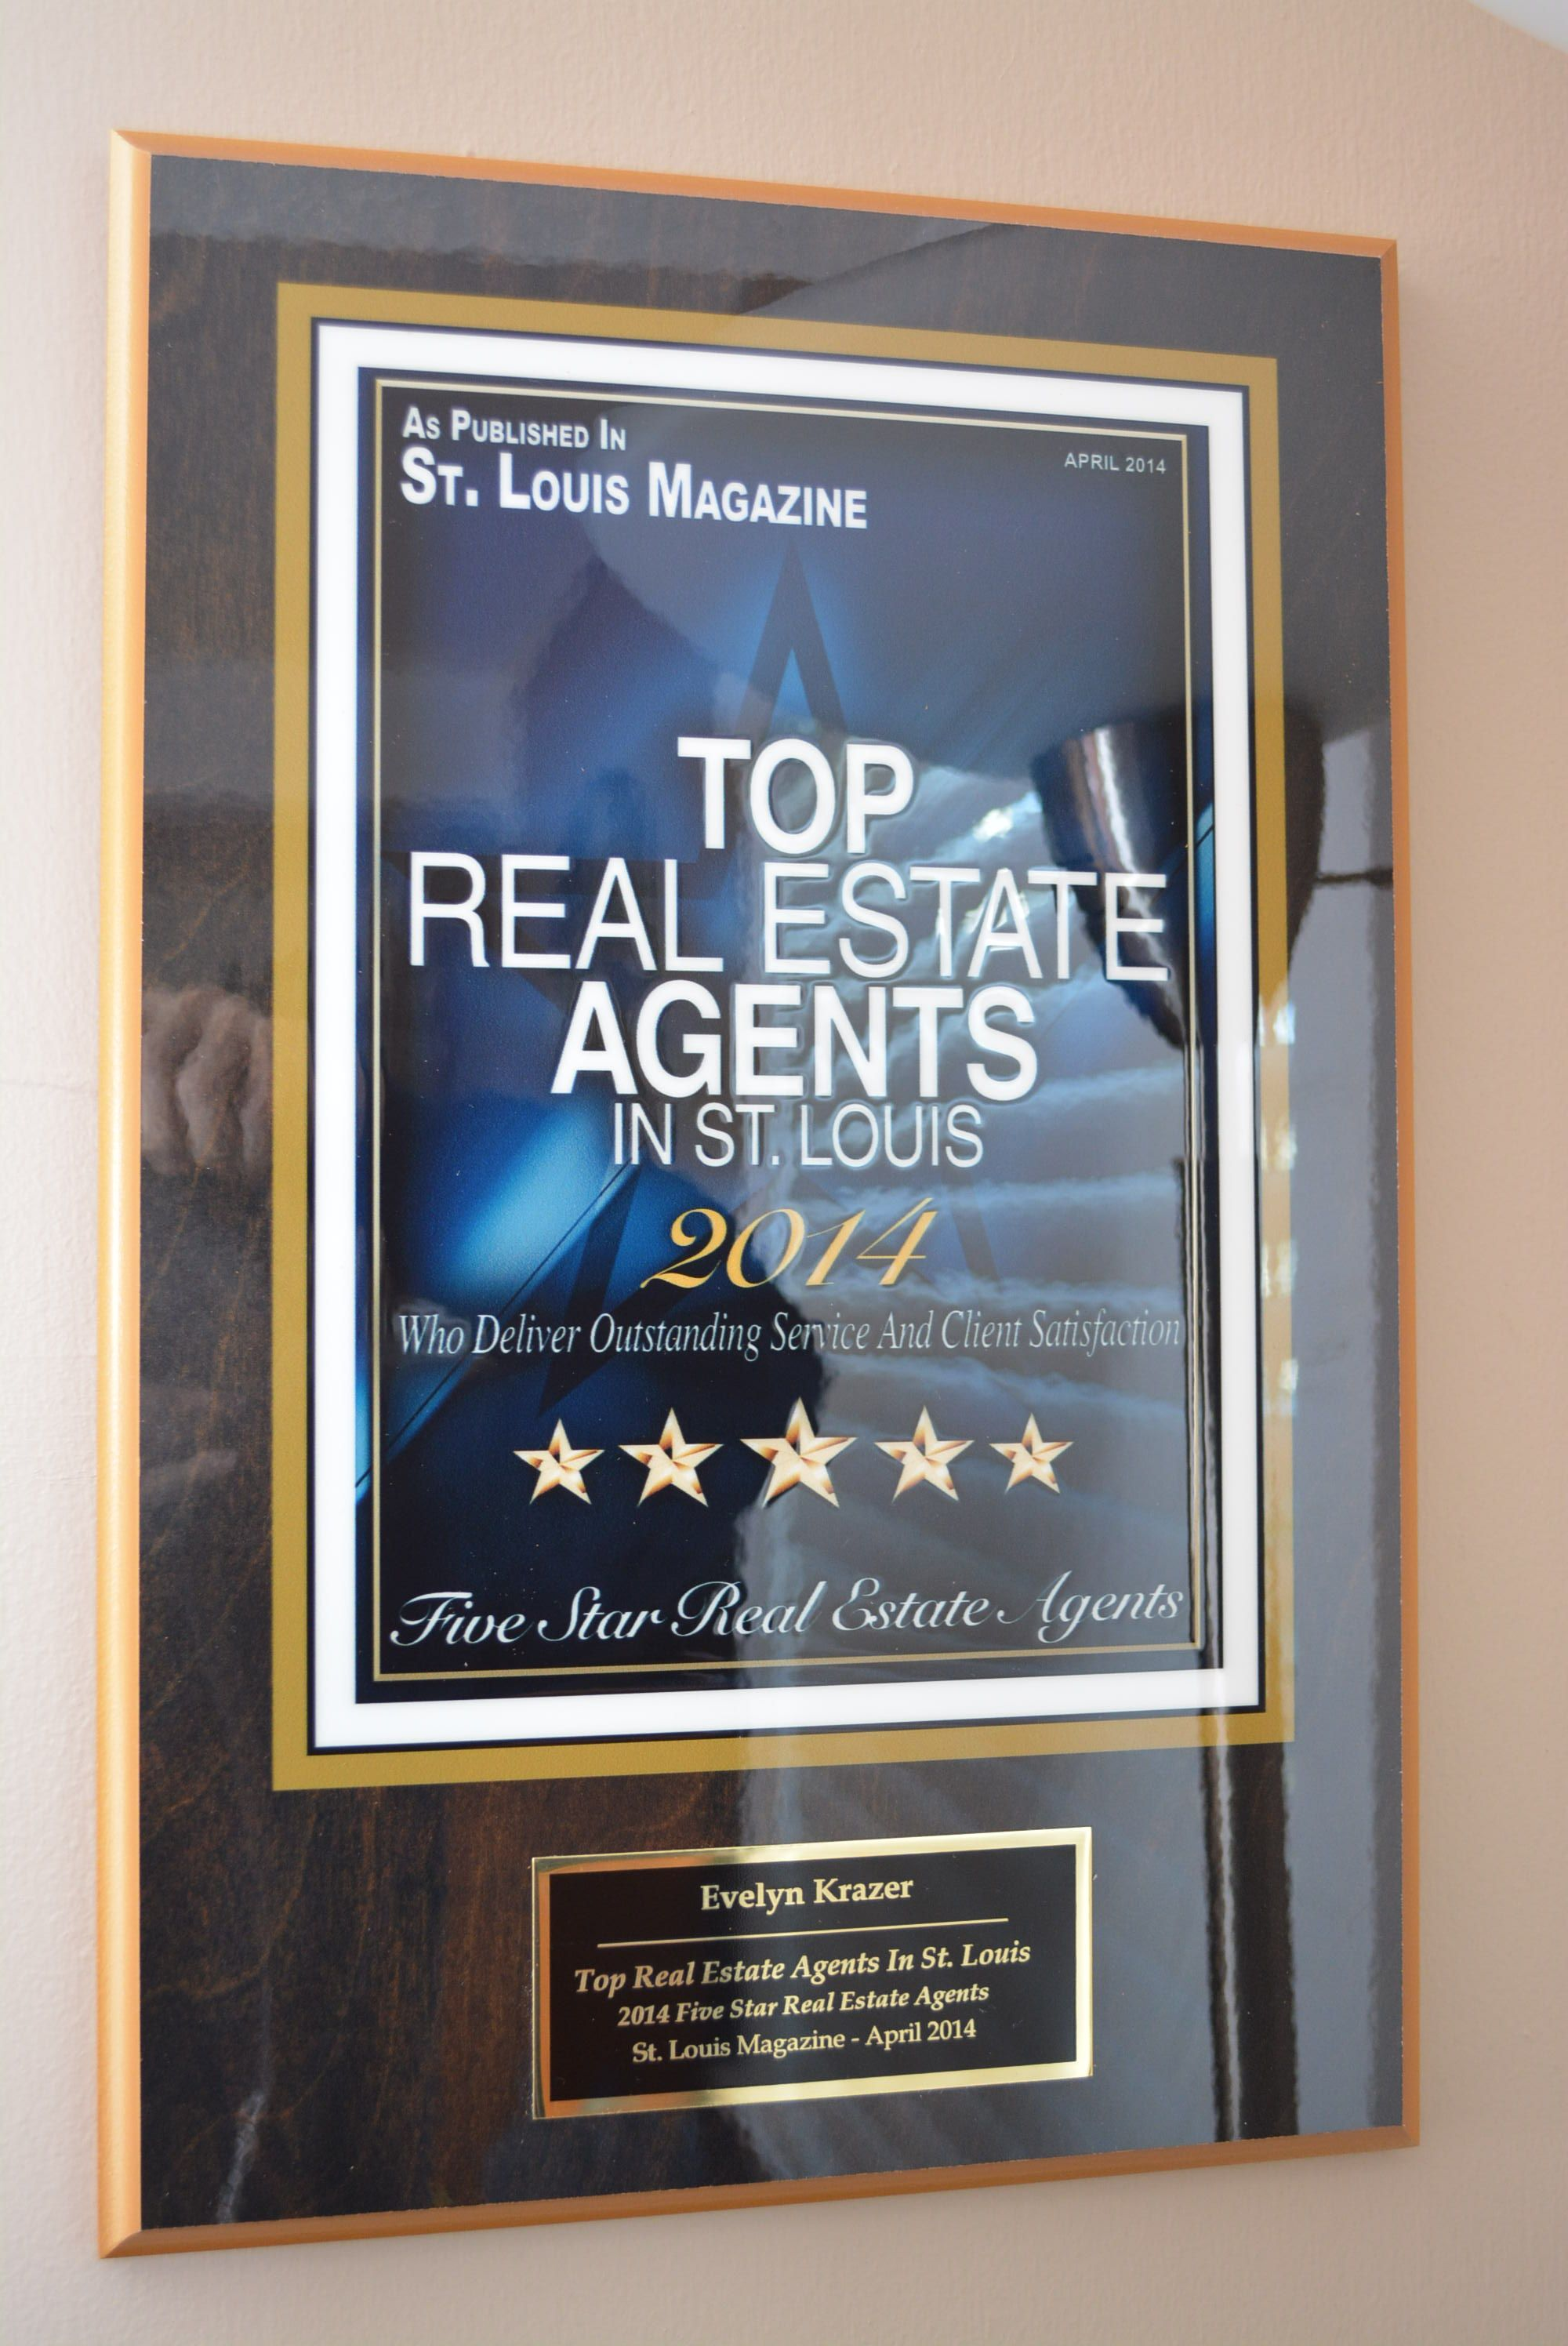 5 Star Real Estate Agent Plaque